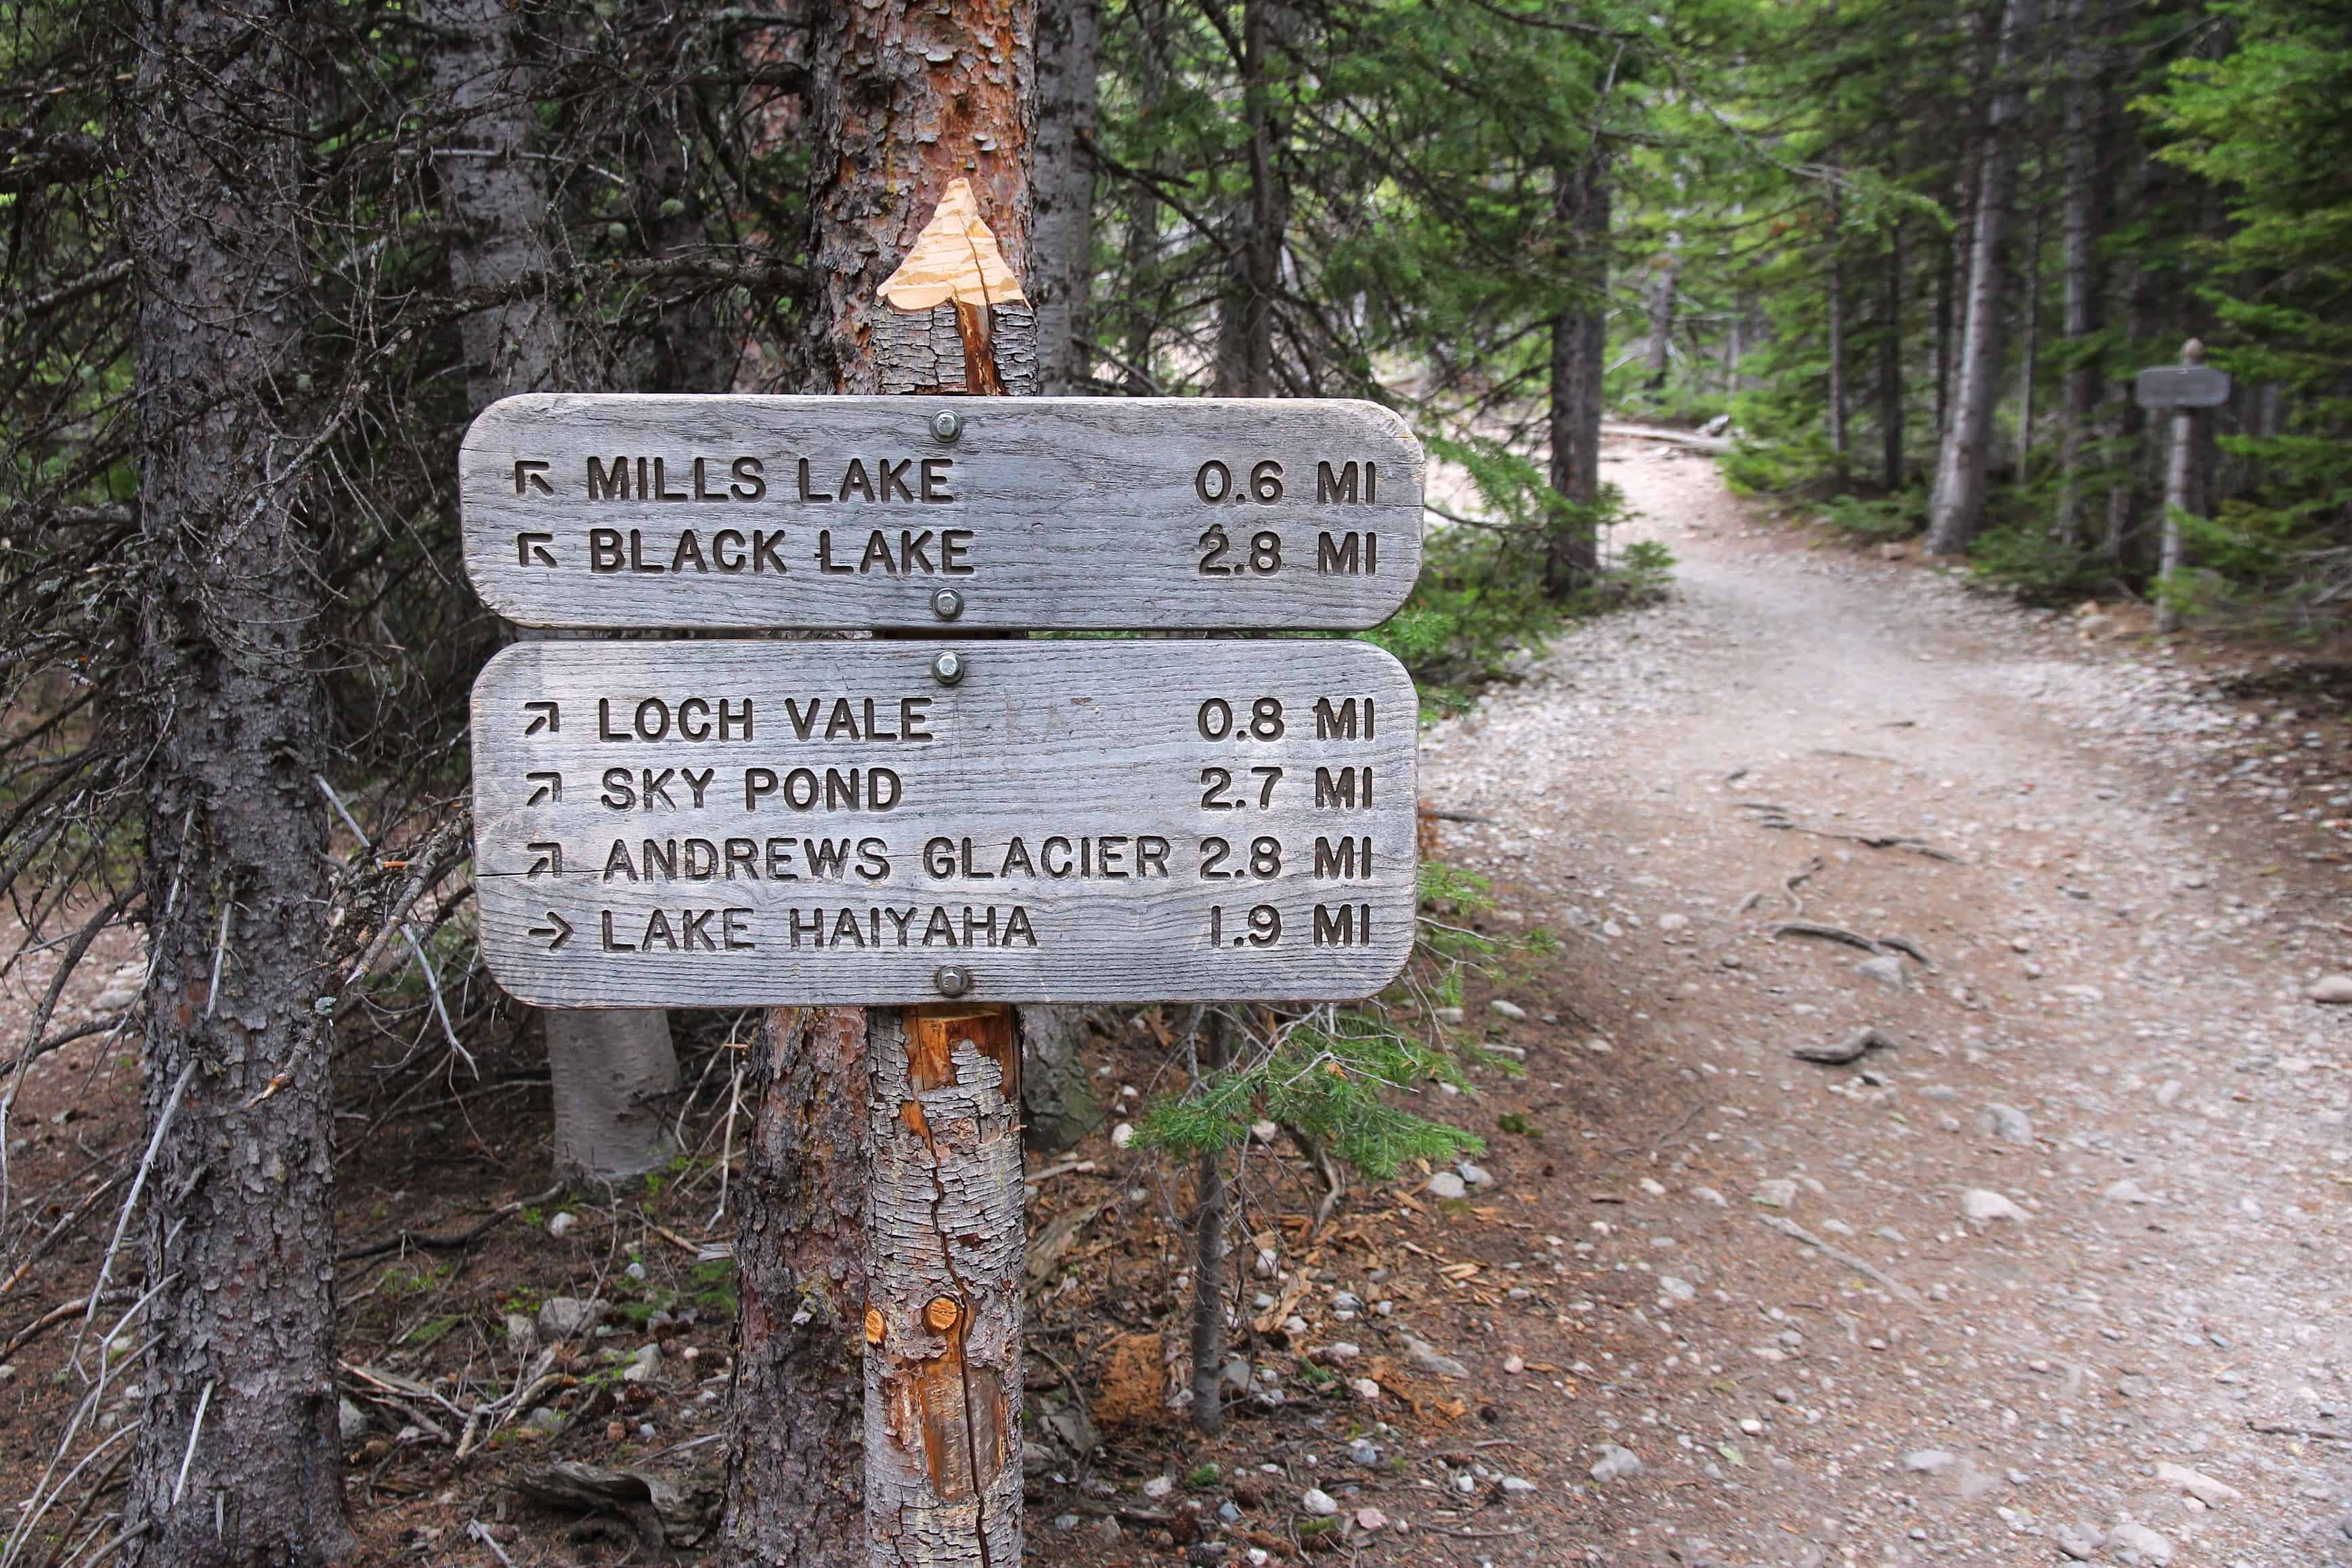 Rocky Mountain National Park in Colorado, USA. Trail signs to Mills Lake, Black Lake, Andrews Glacier and Lake Haiyaha.